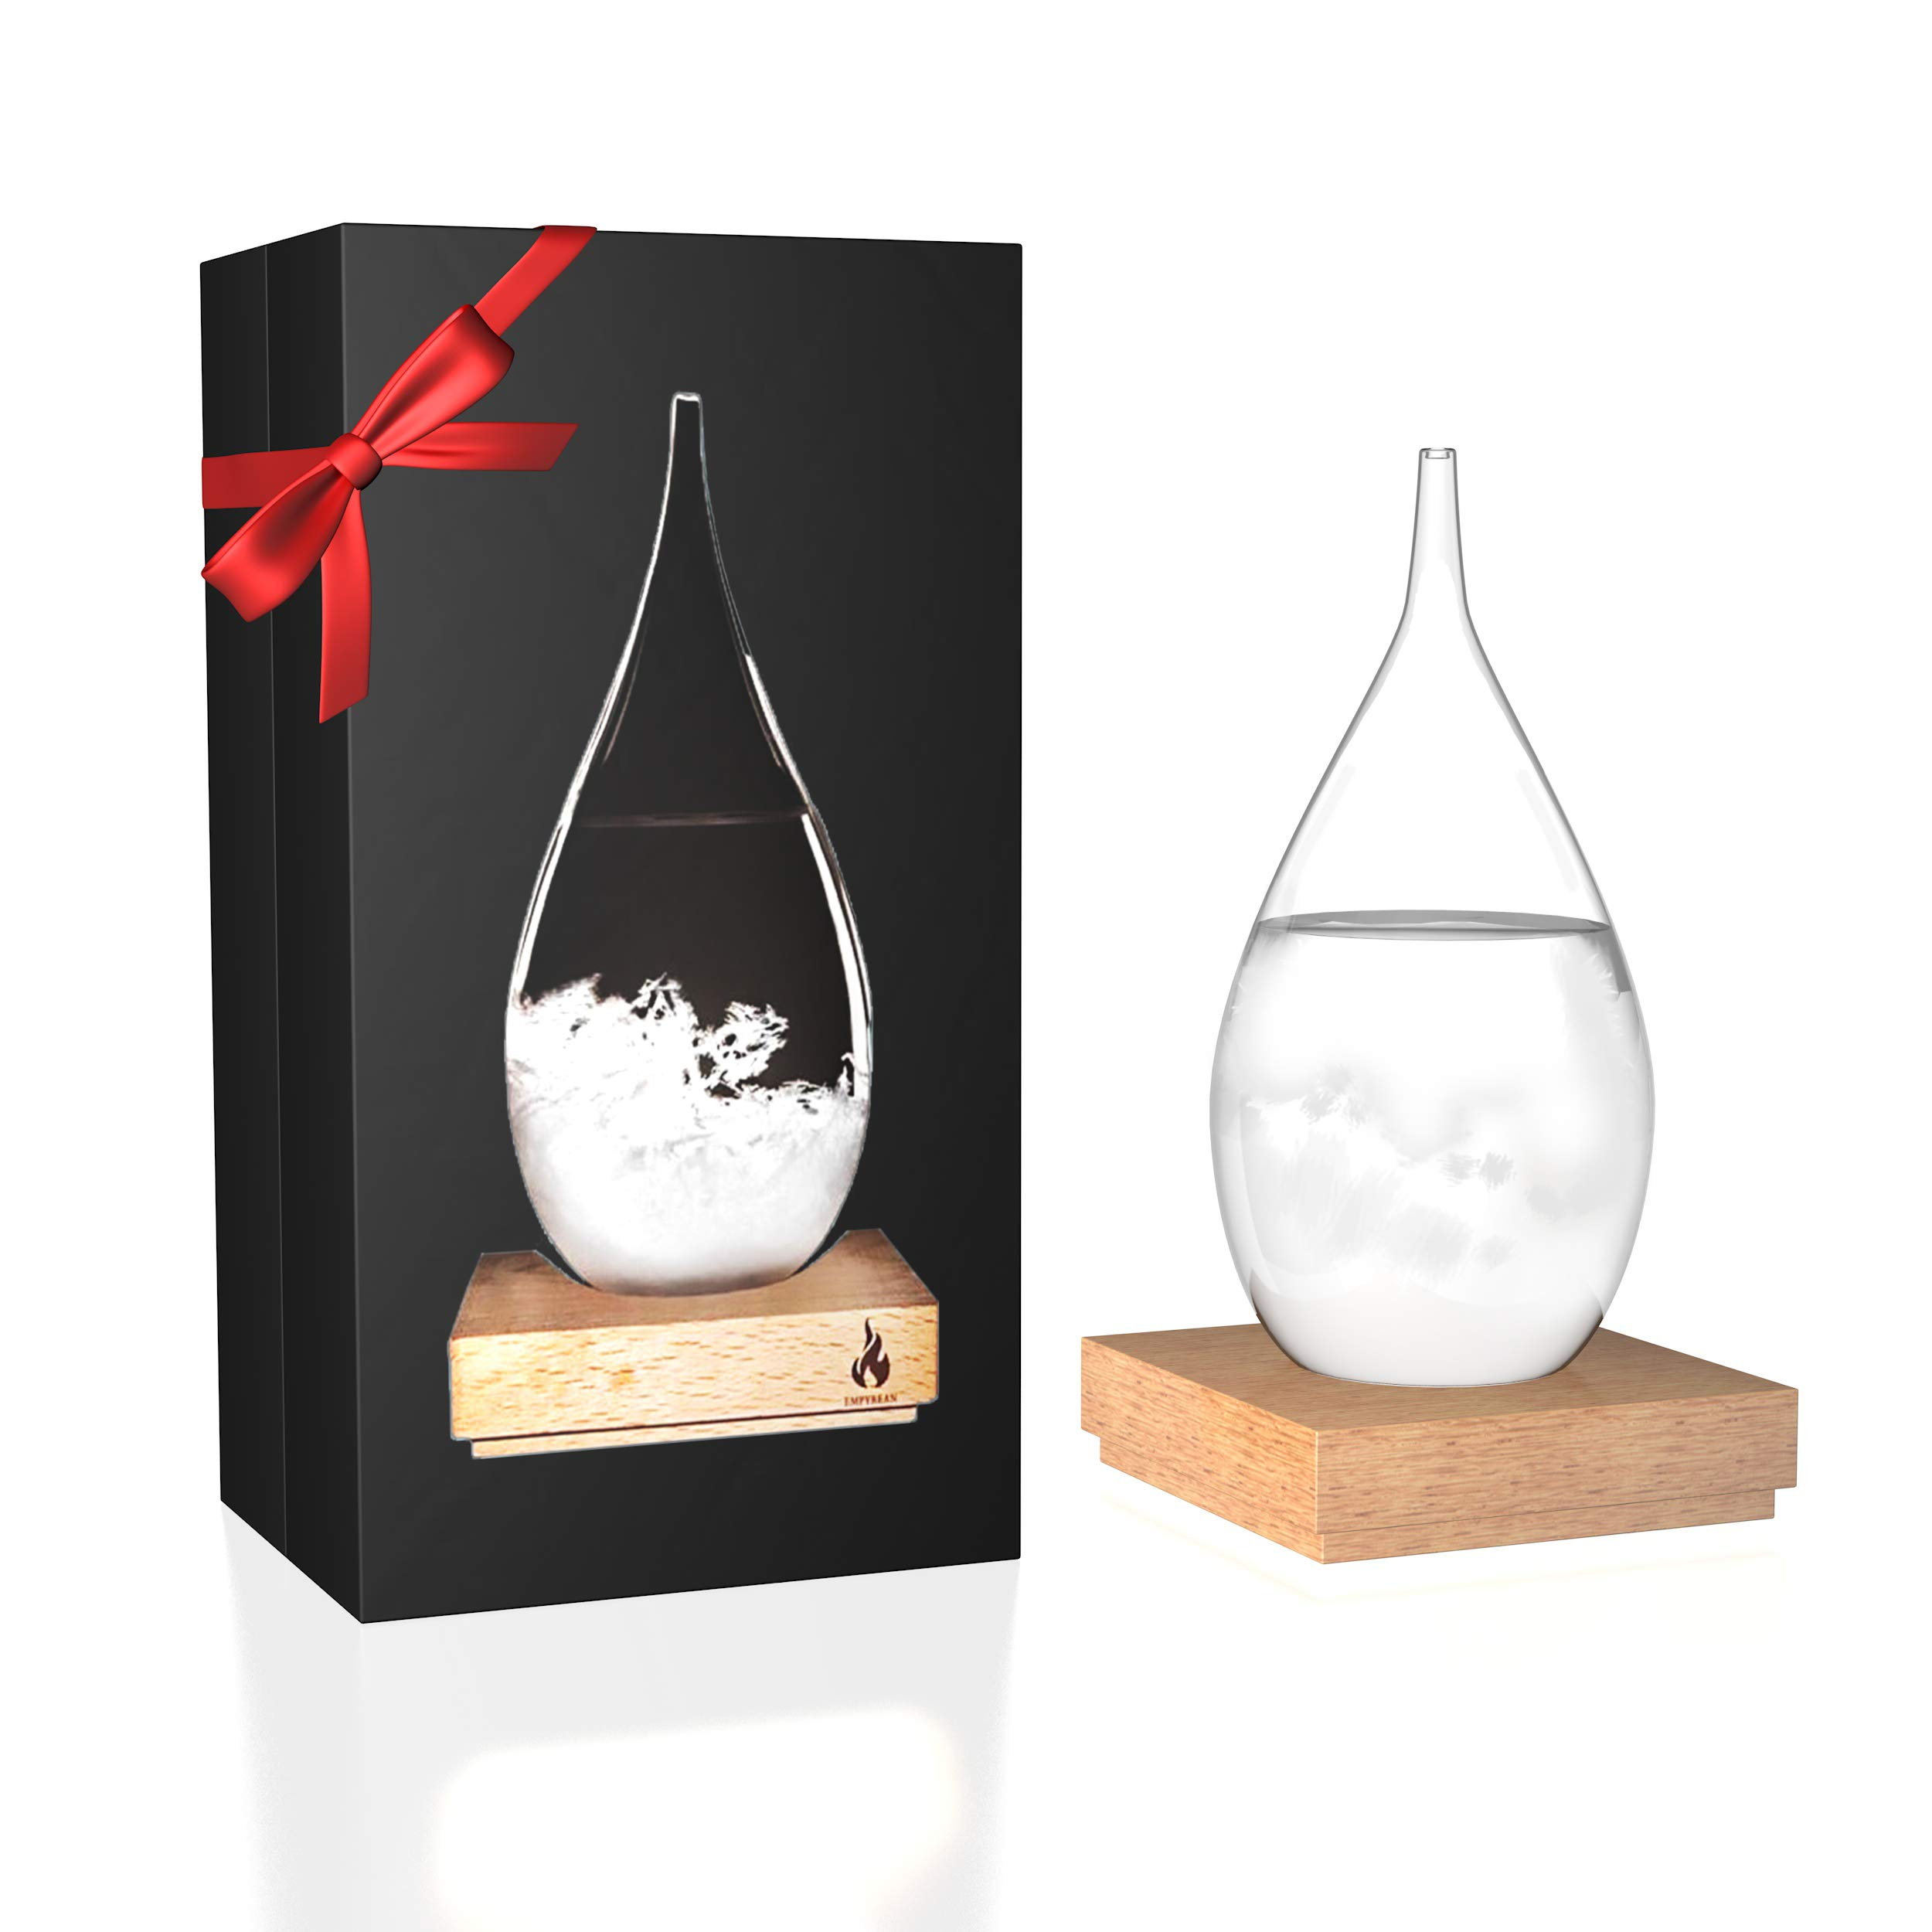 Empyrean Decorative Storm Glass - Water Drop Weather Predictor Creative Forecast Bottle Barometer Weather Glass - 17th Century European Meteorological Stylish Display Large Home Glass Crafts (Large) by Empyrean